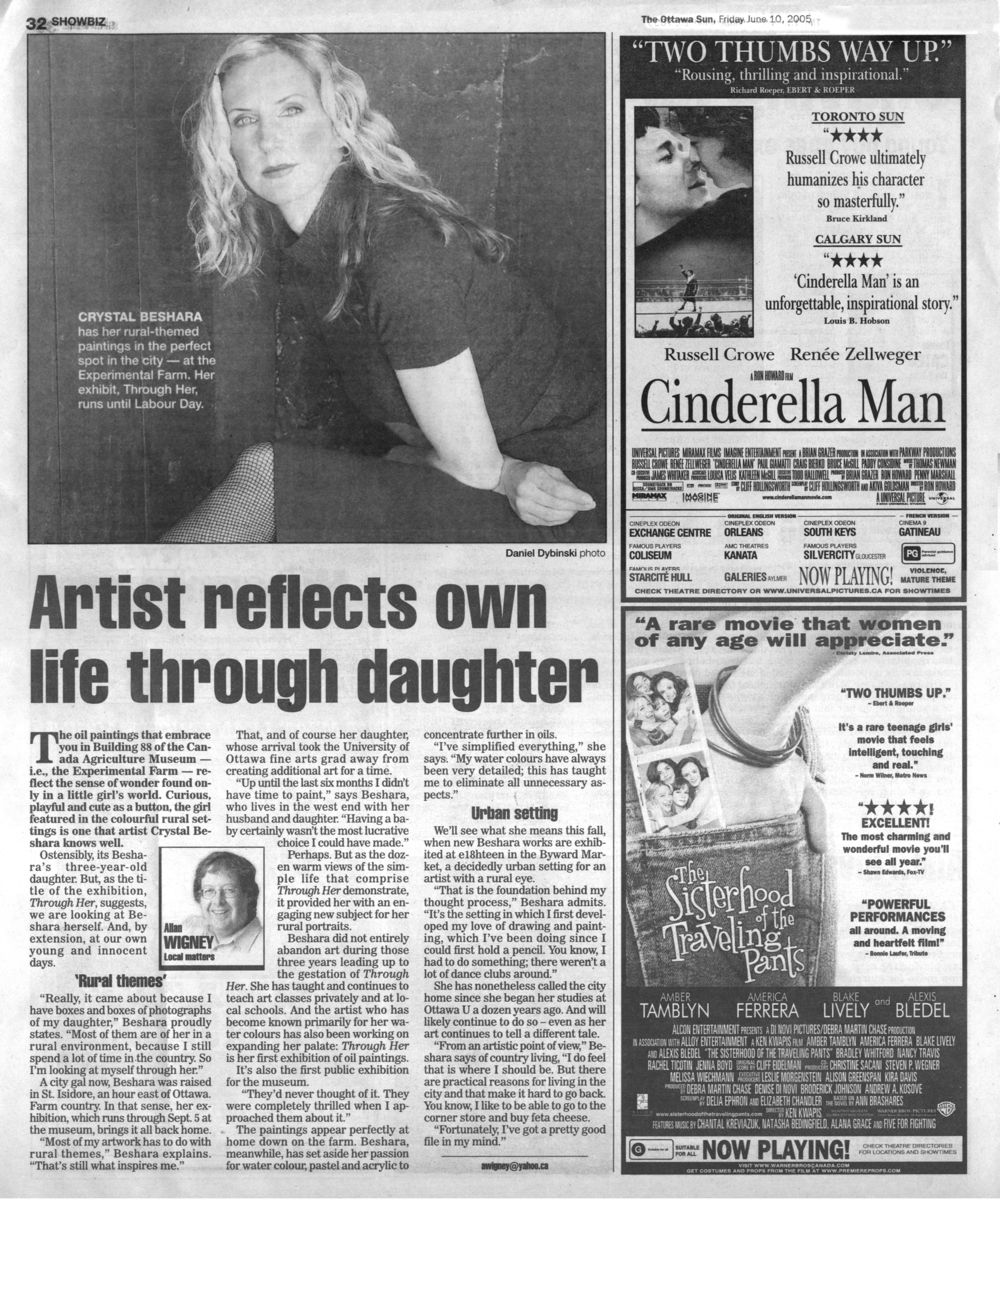 sun article scanned june 10,2005.jpg